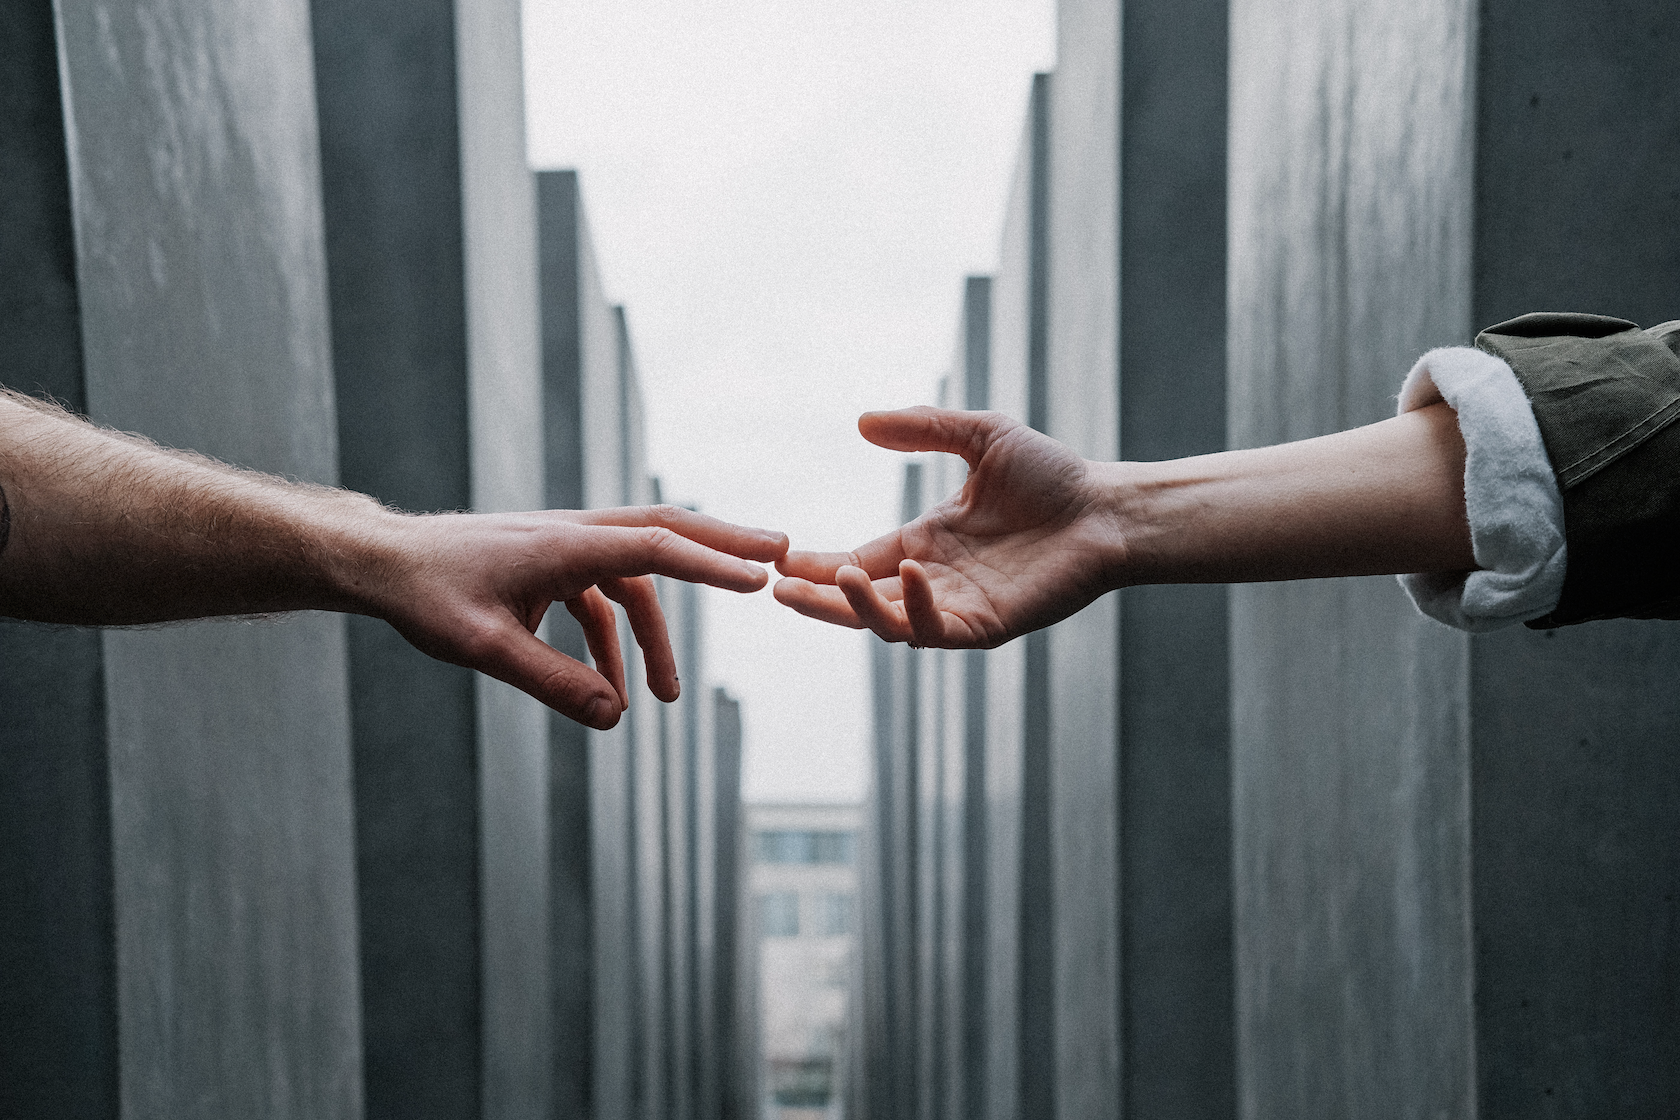 Two hands reach out to each other with buildings in the background.